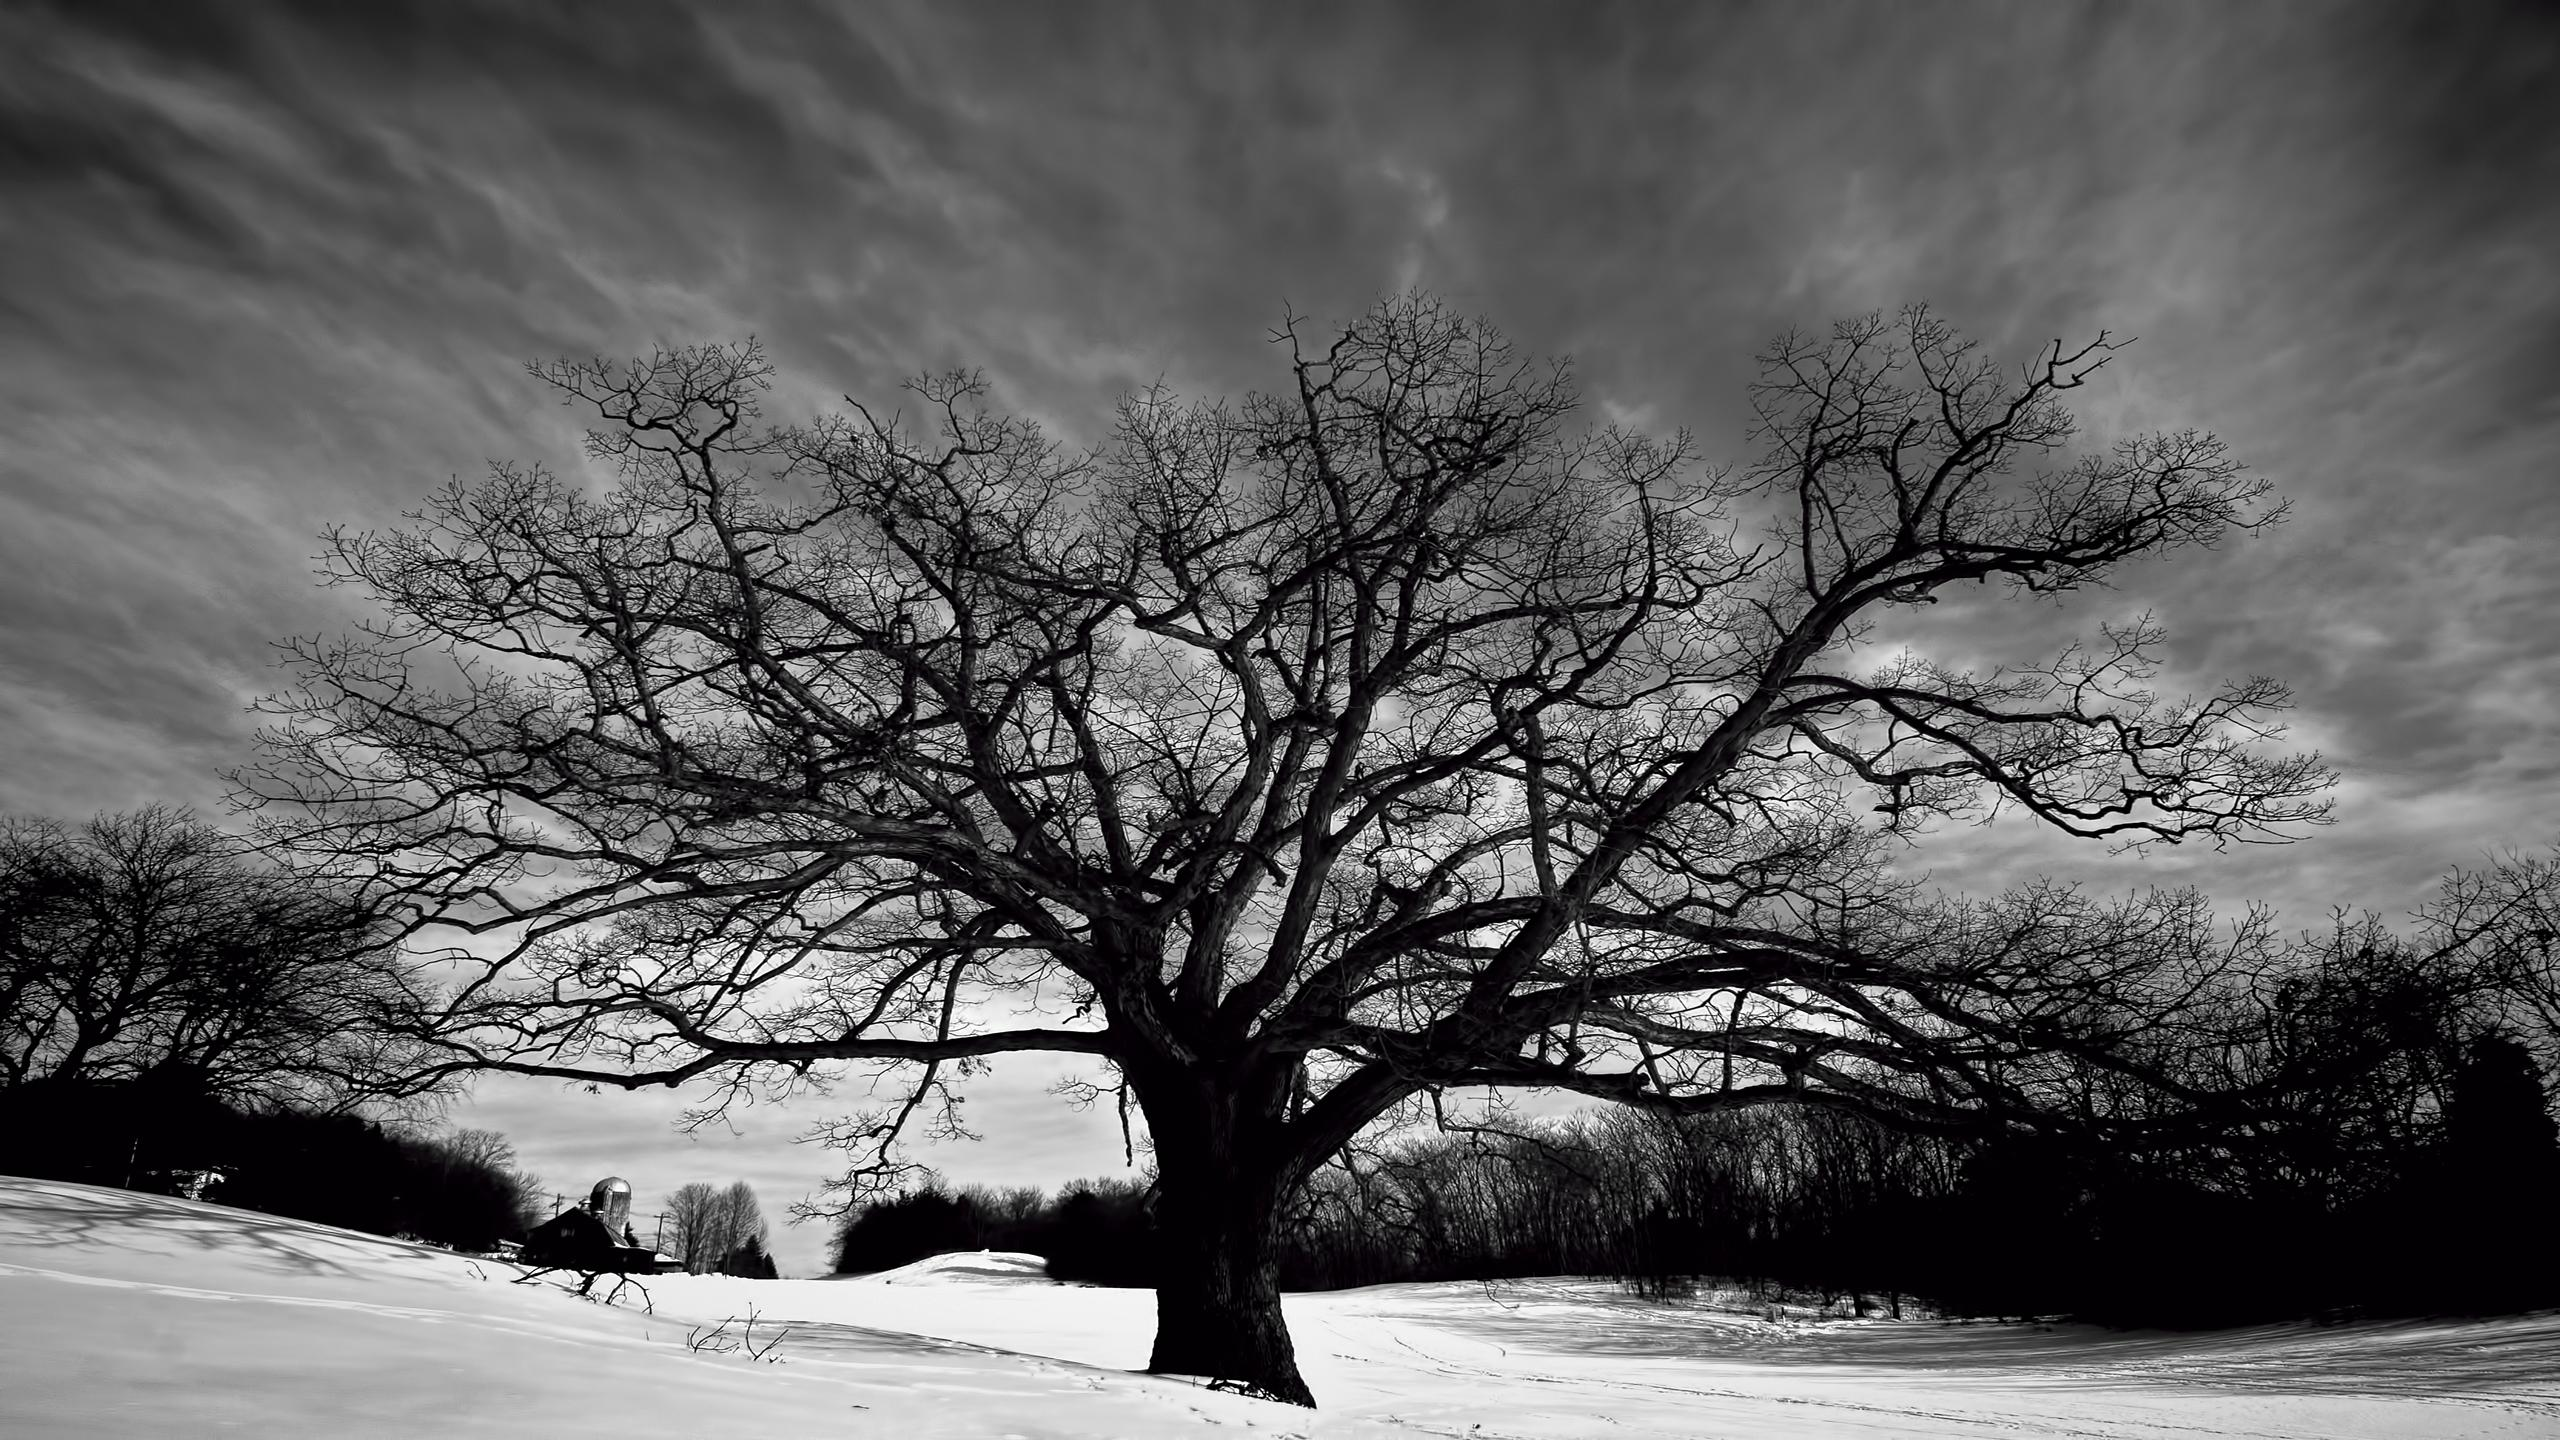 Tree wallpaper black and white hd wallpapers backgrounds images